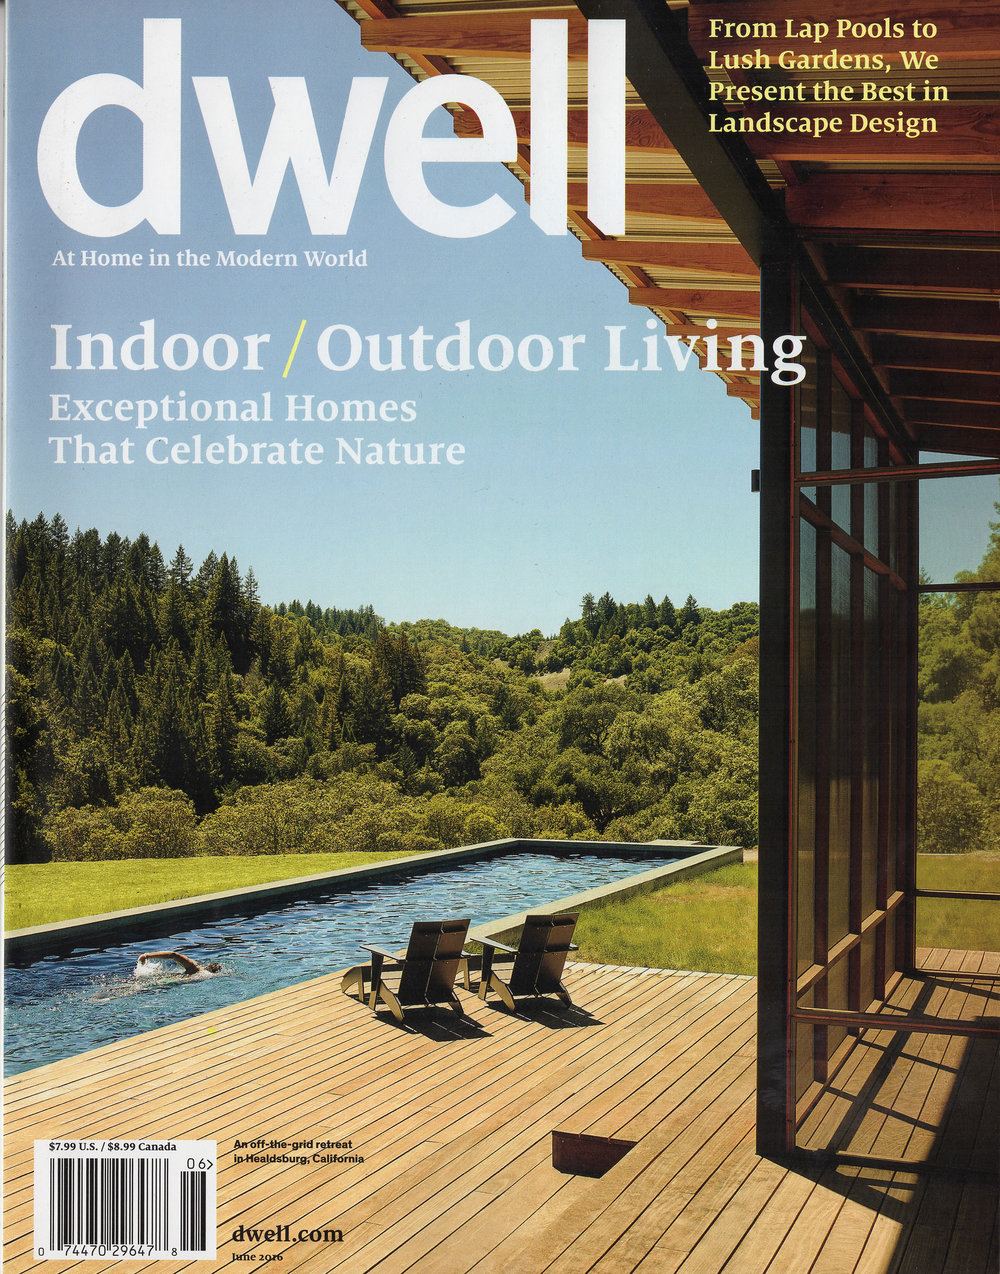 goCstudio_Dwell Cover.JPG